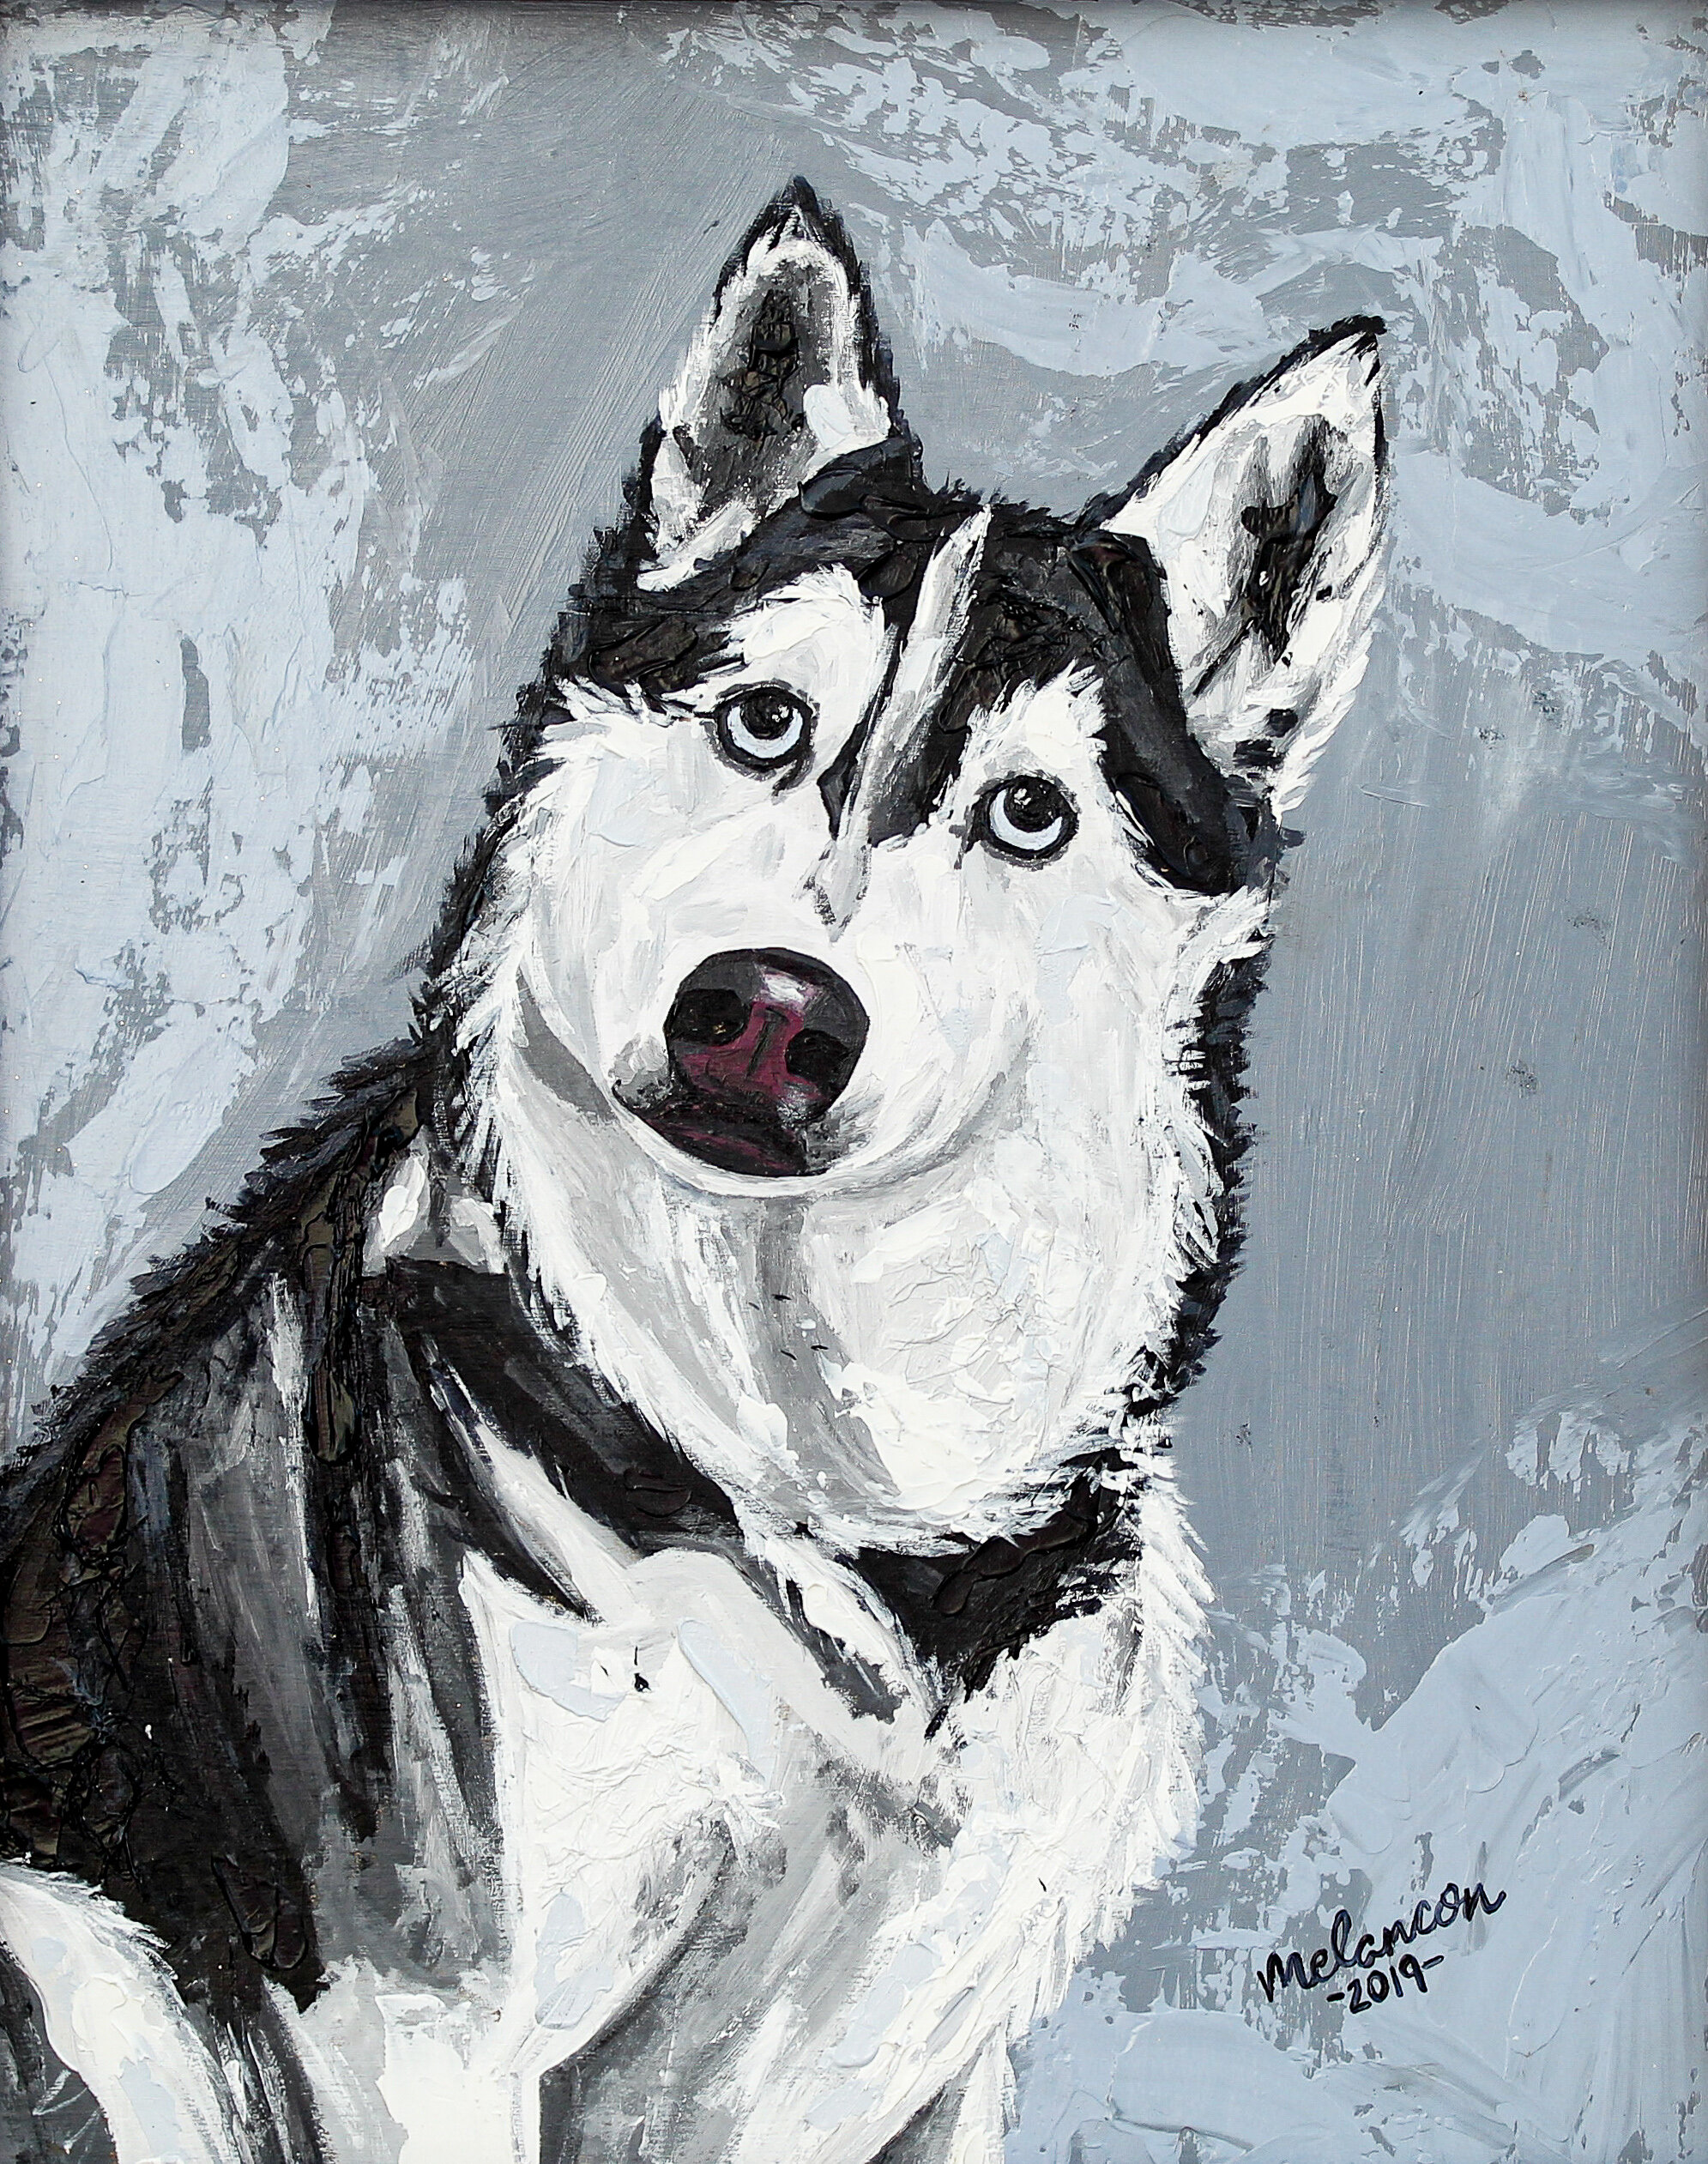 Portfolio - Need some inspiration? Take a look at my portfolio to view pet portraits and more!